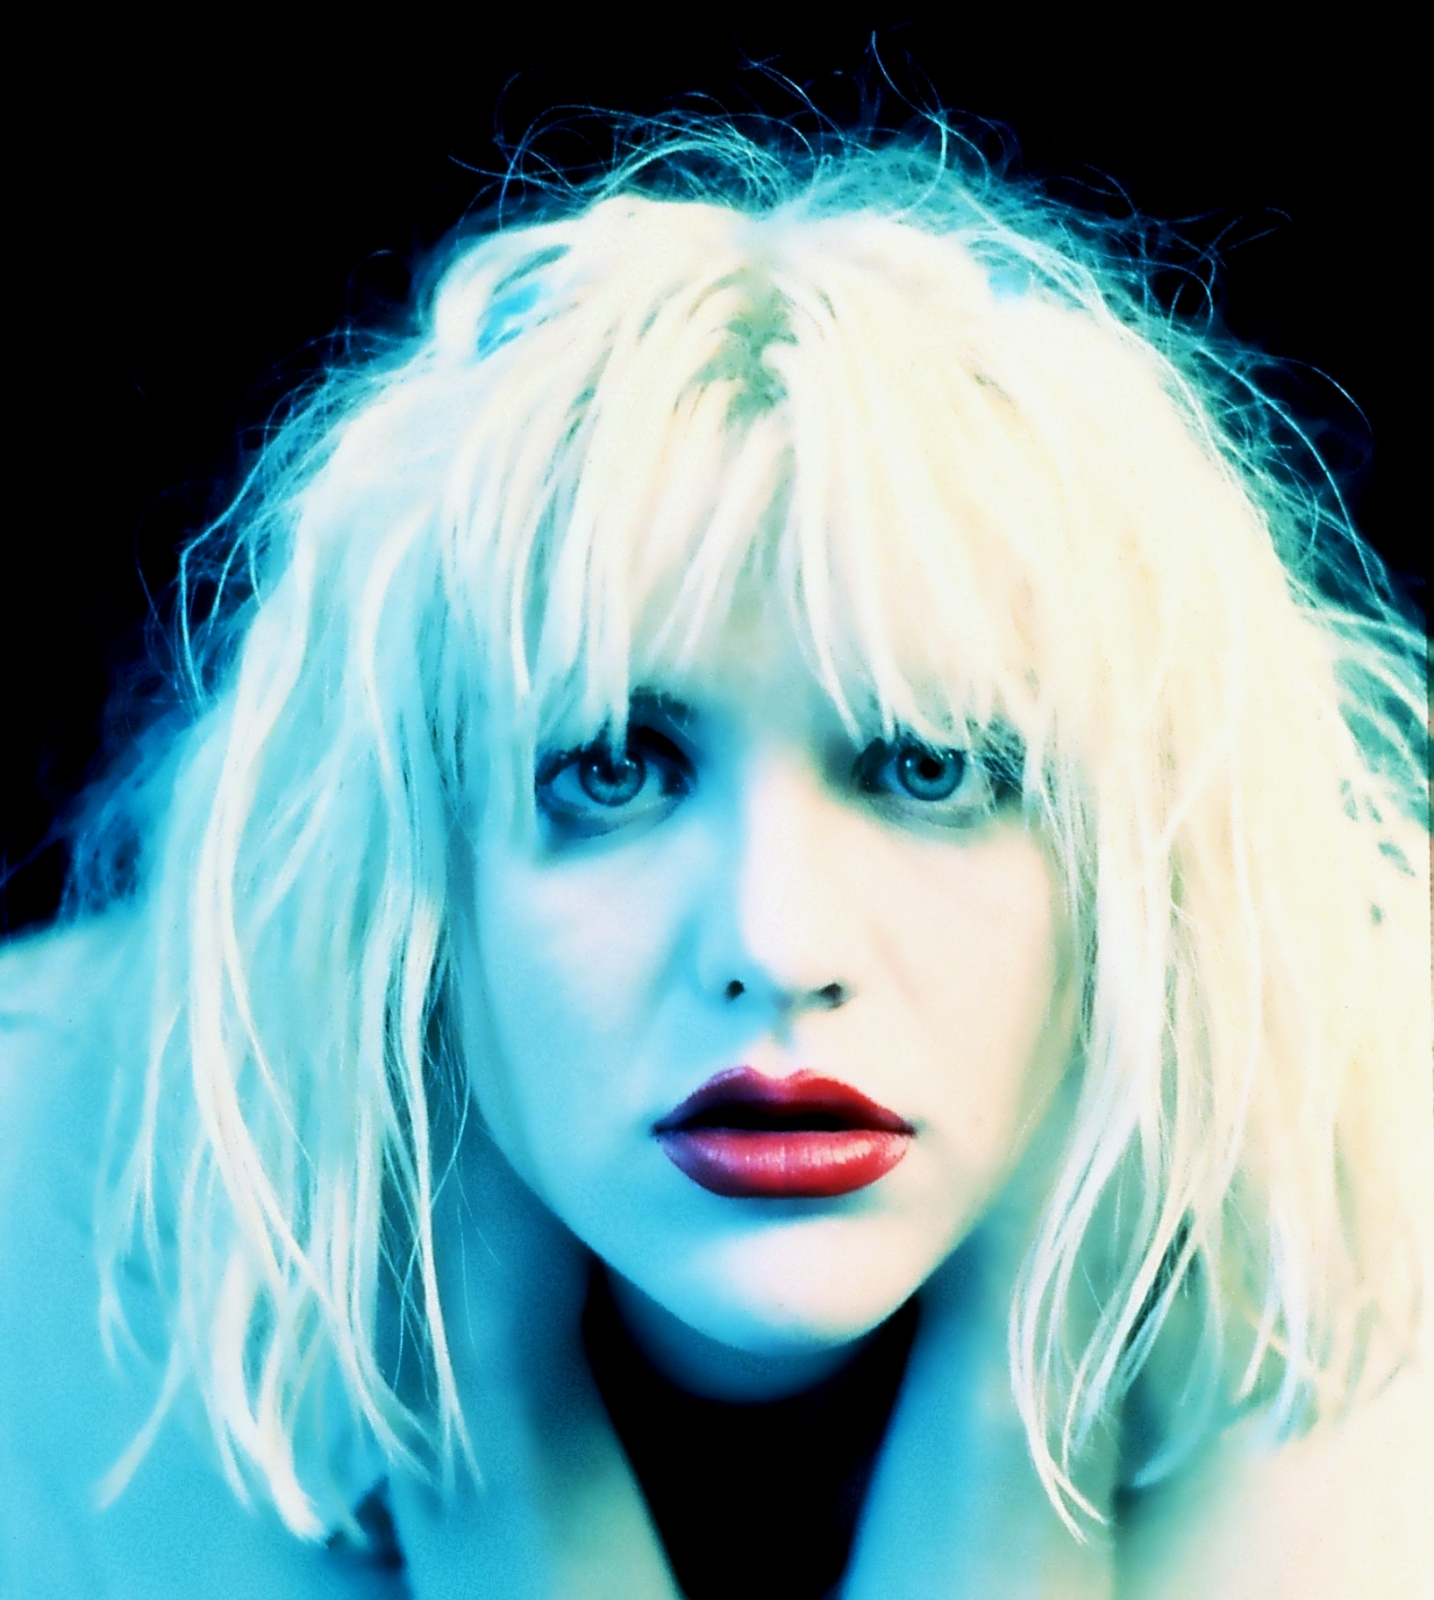 Young Courtney Love nudes (96 photo), Topless, Sideboobs, Twitter, cleavage 2017